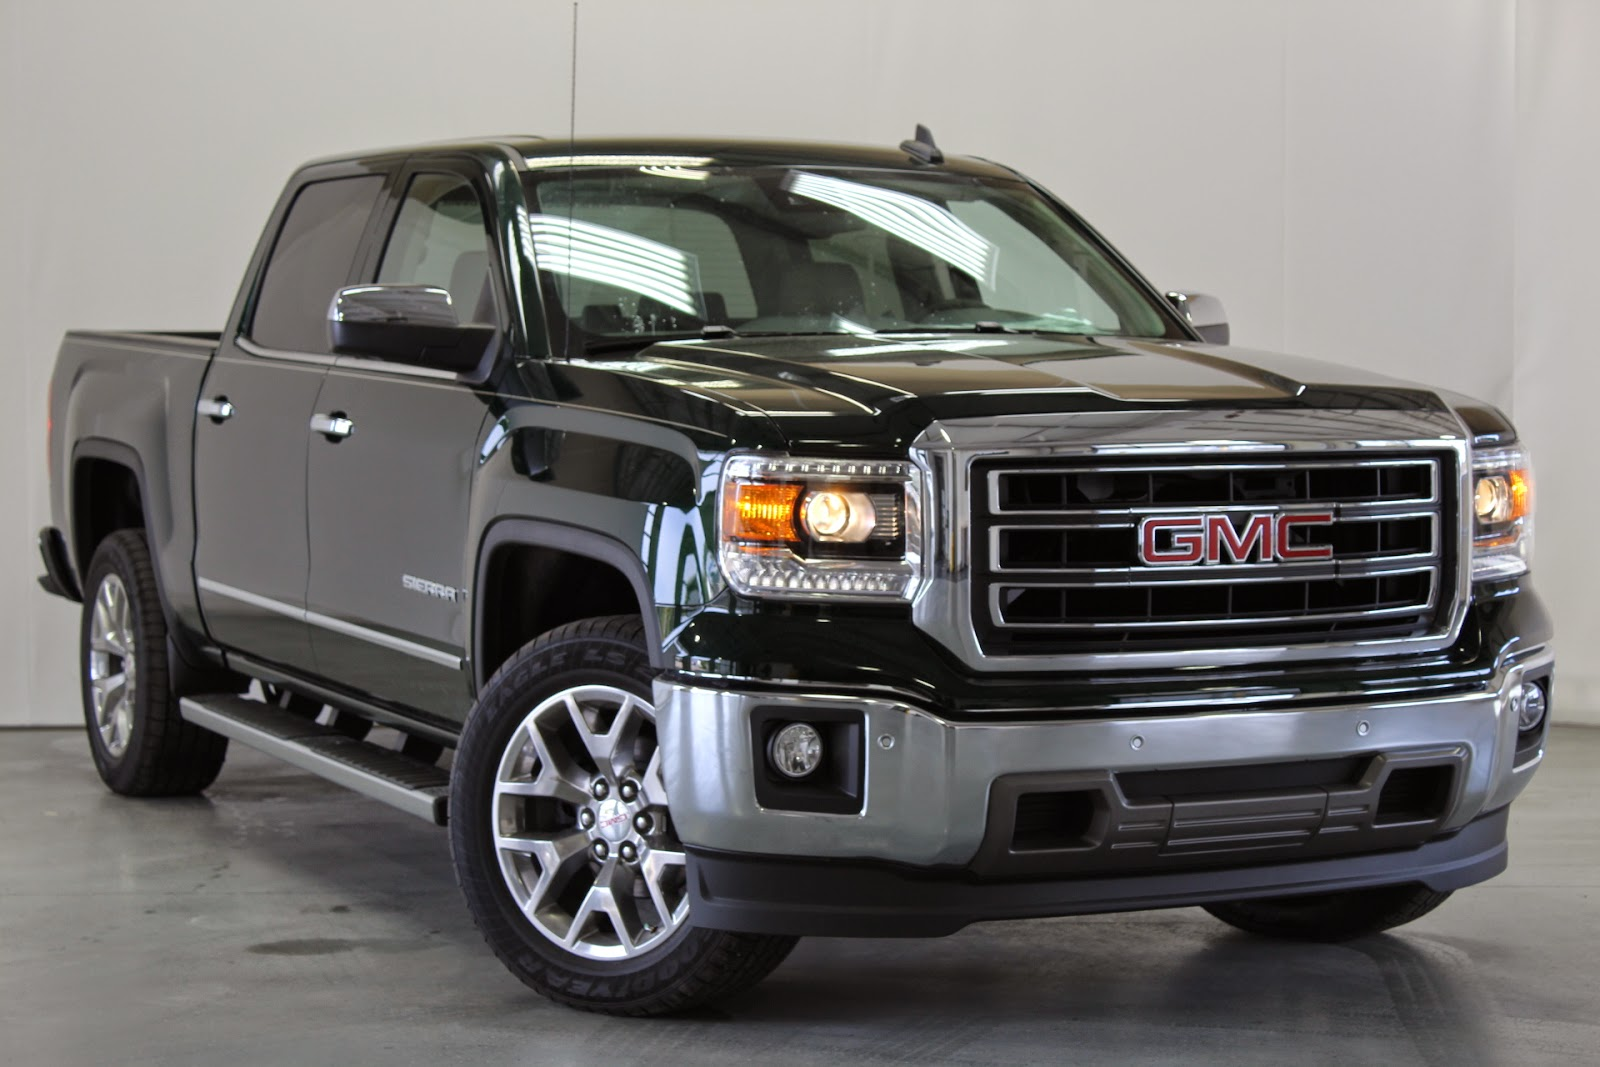 2017 Gmc Sierra 1500 Review Full Size Pickup On The Market In A Variety Of Cab With Decent Rating Crash Test Safety